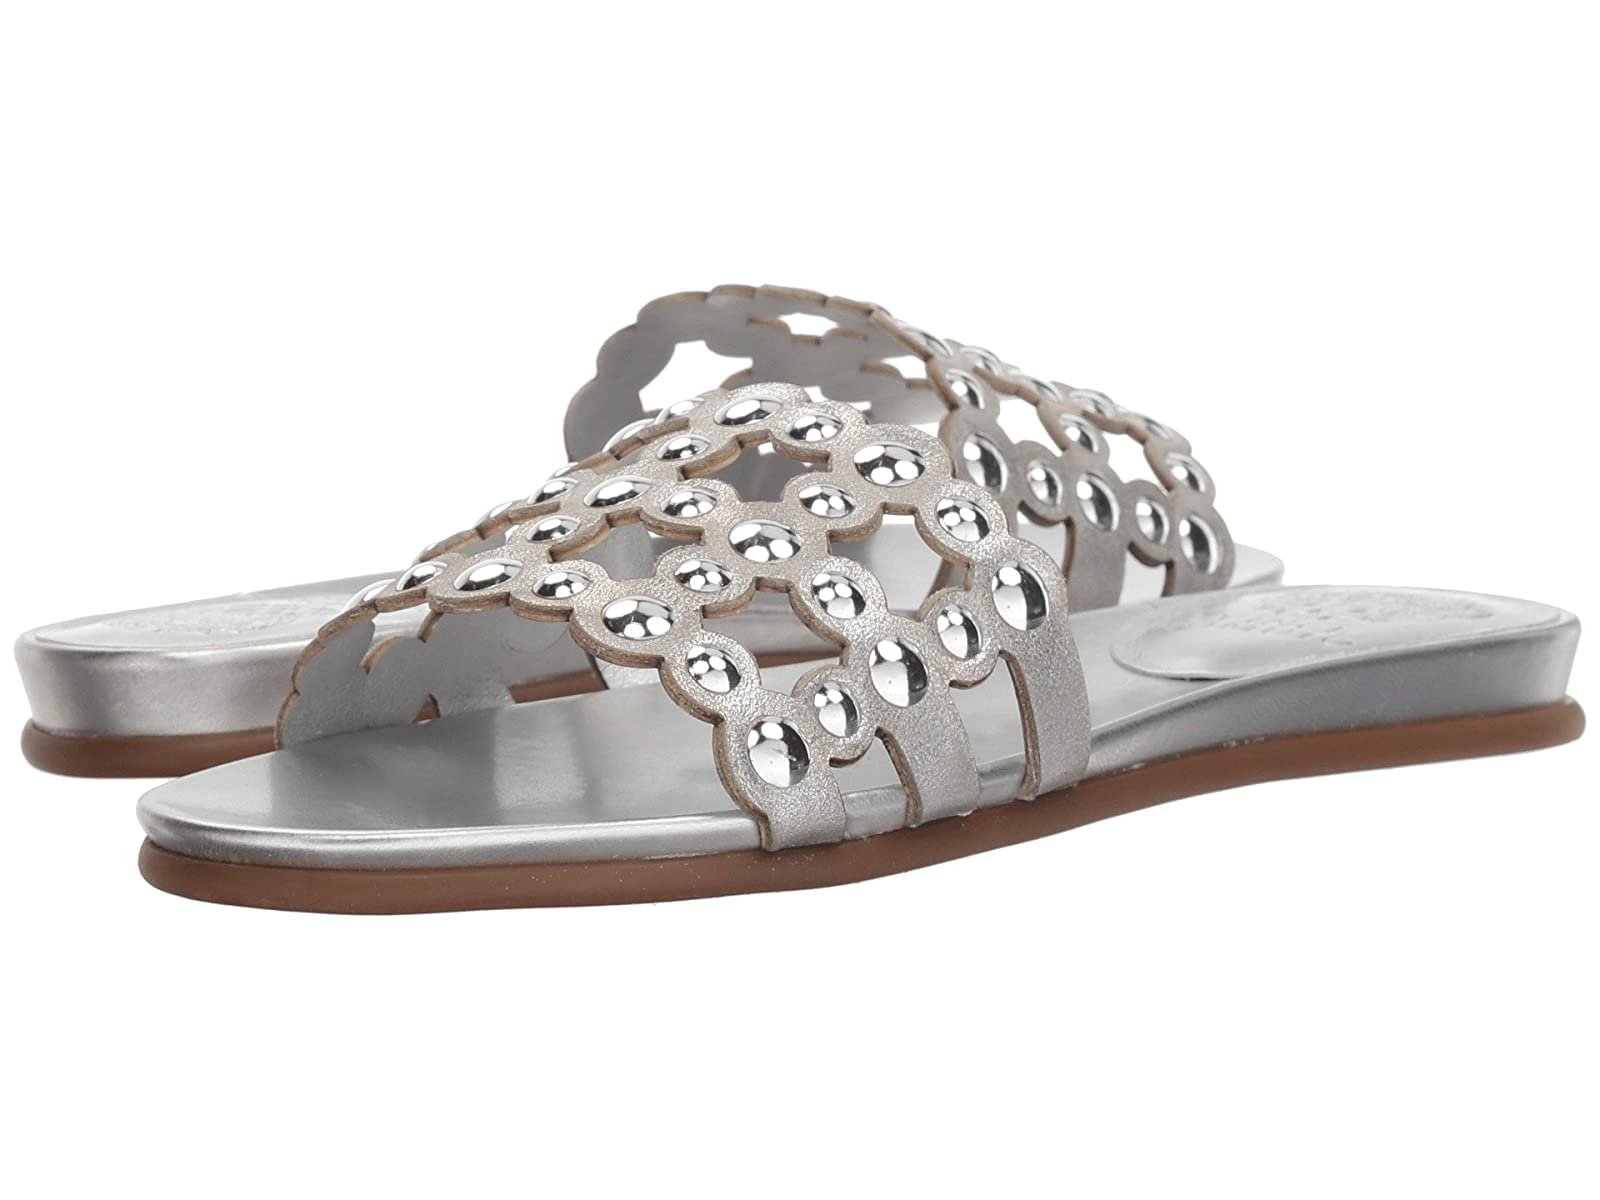 Vince Camuto EllannaAtmospheric grades have affordable shoes